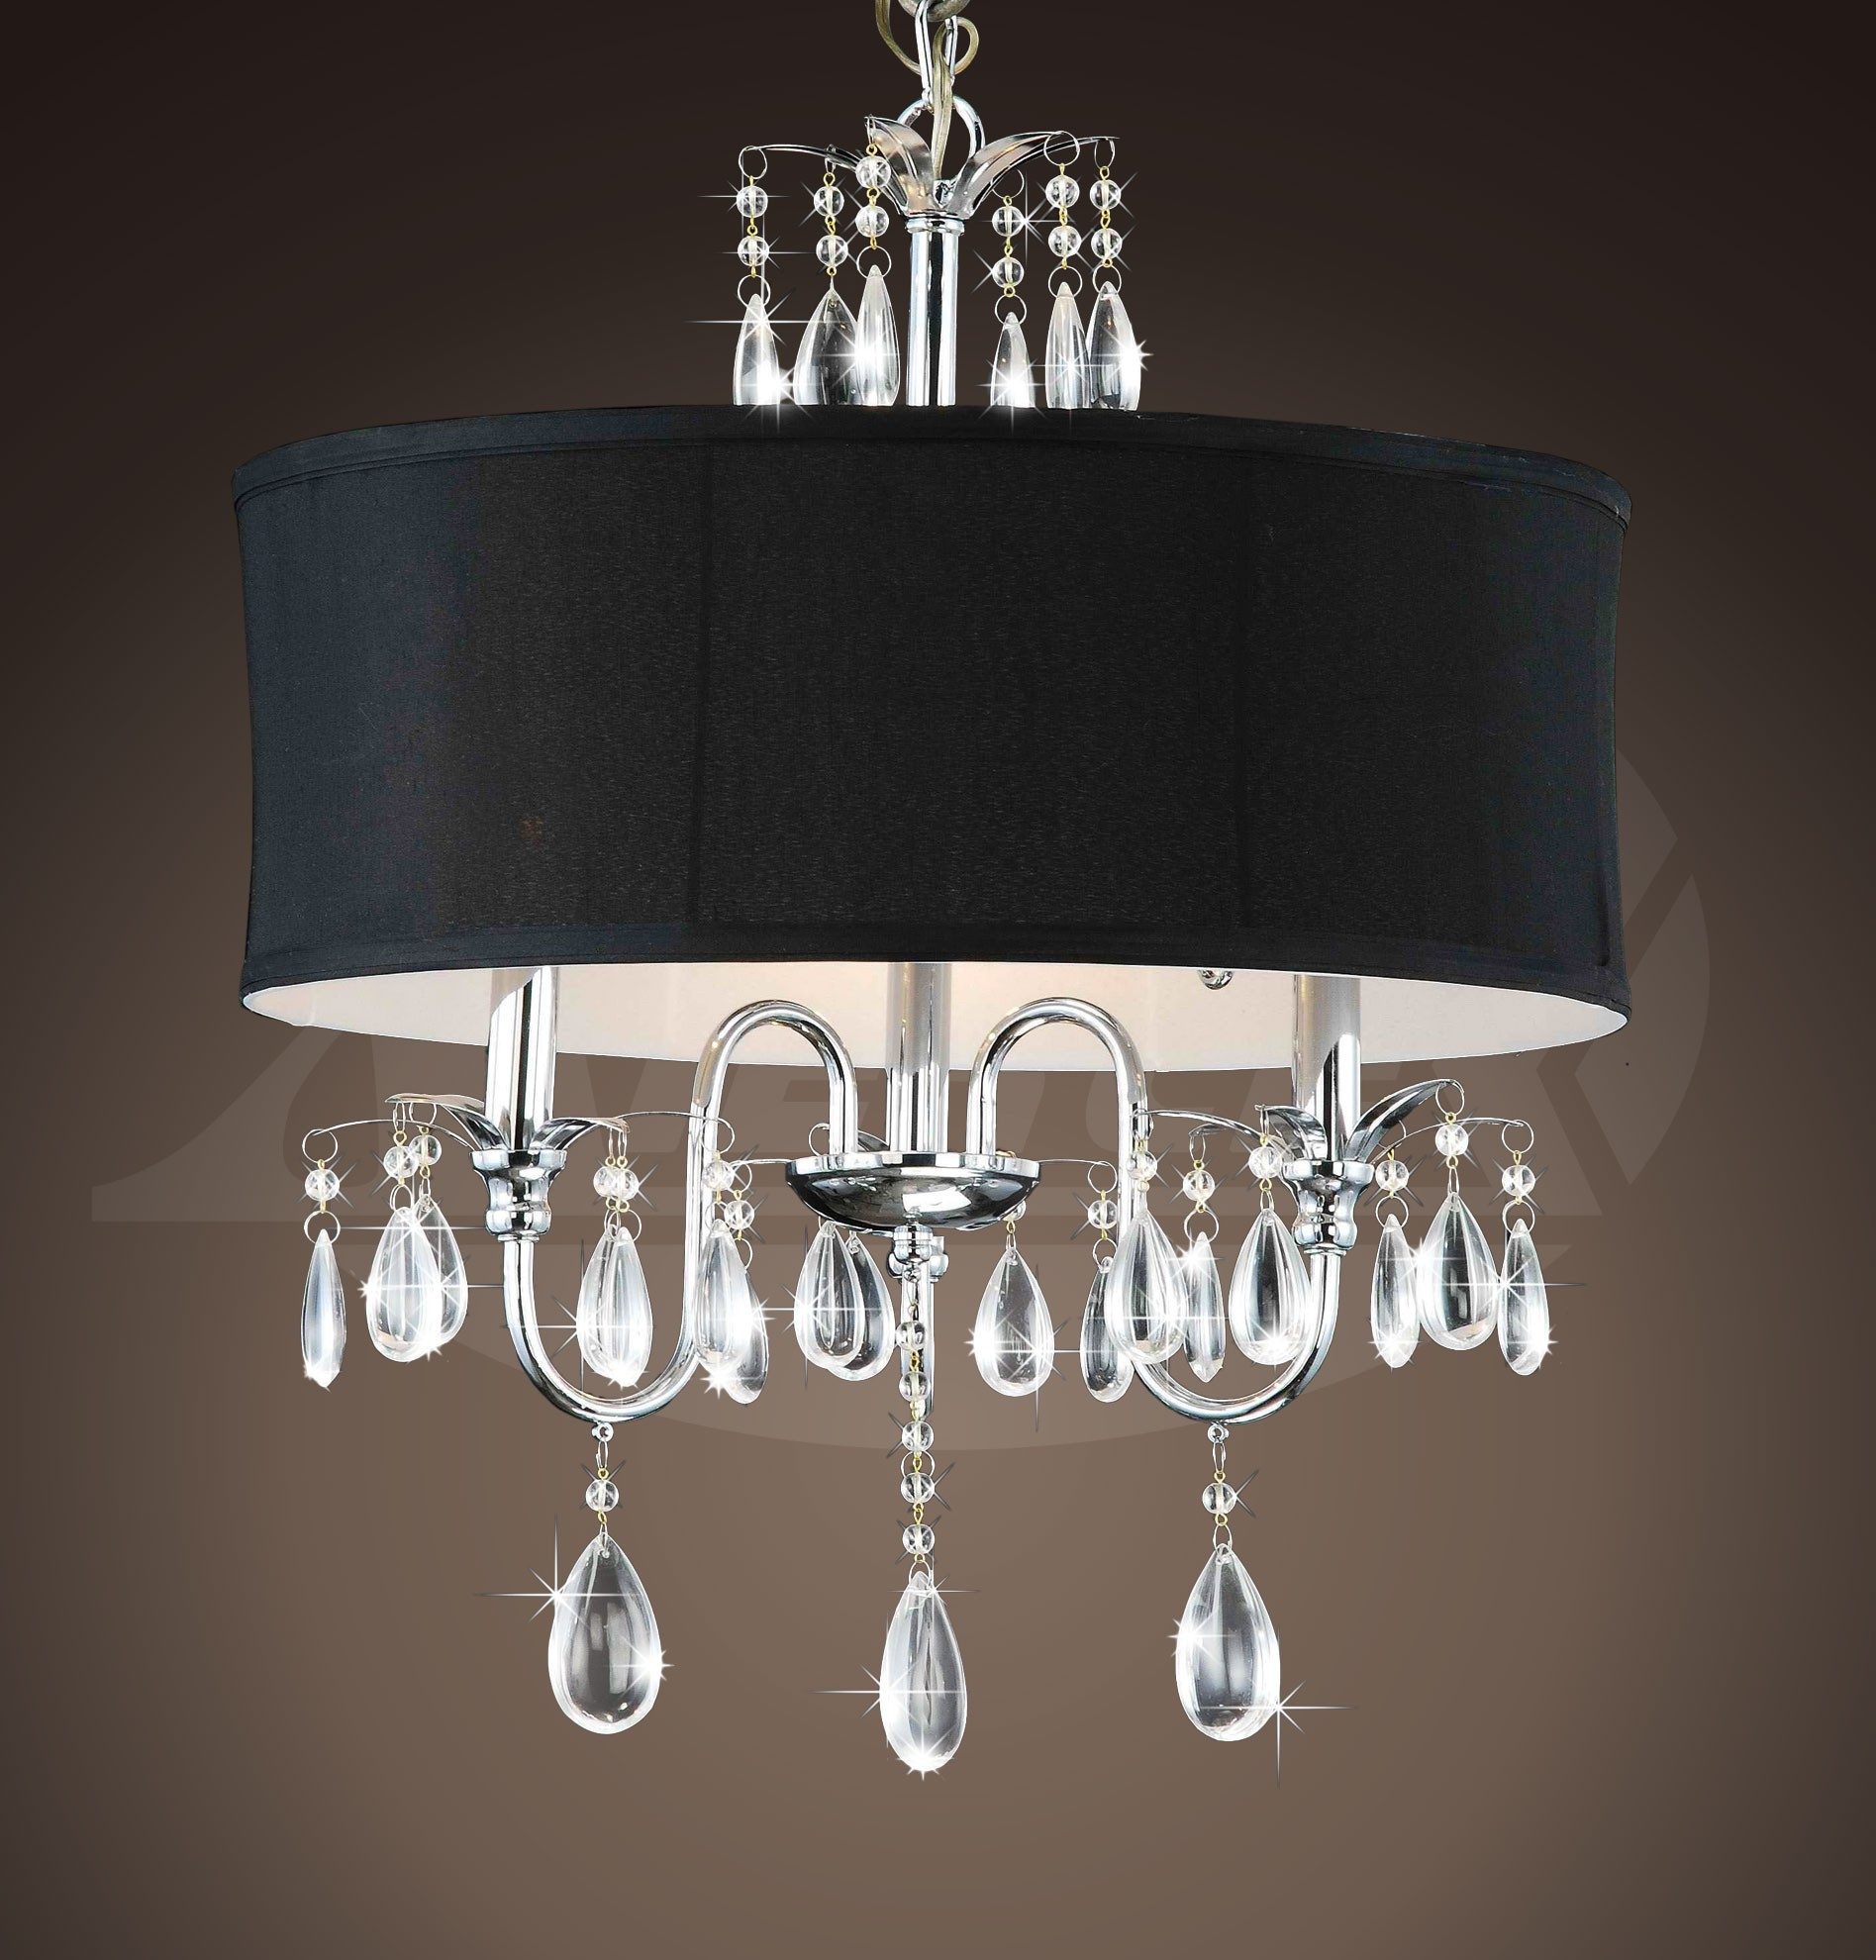 Sienna chrome 3 light black shade crystal chandelier 18w x 22 h sienna chrome 3 light black shade crystal chandelier 18w x 22 aloadofball Images